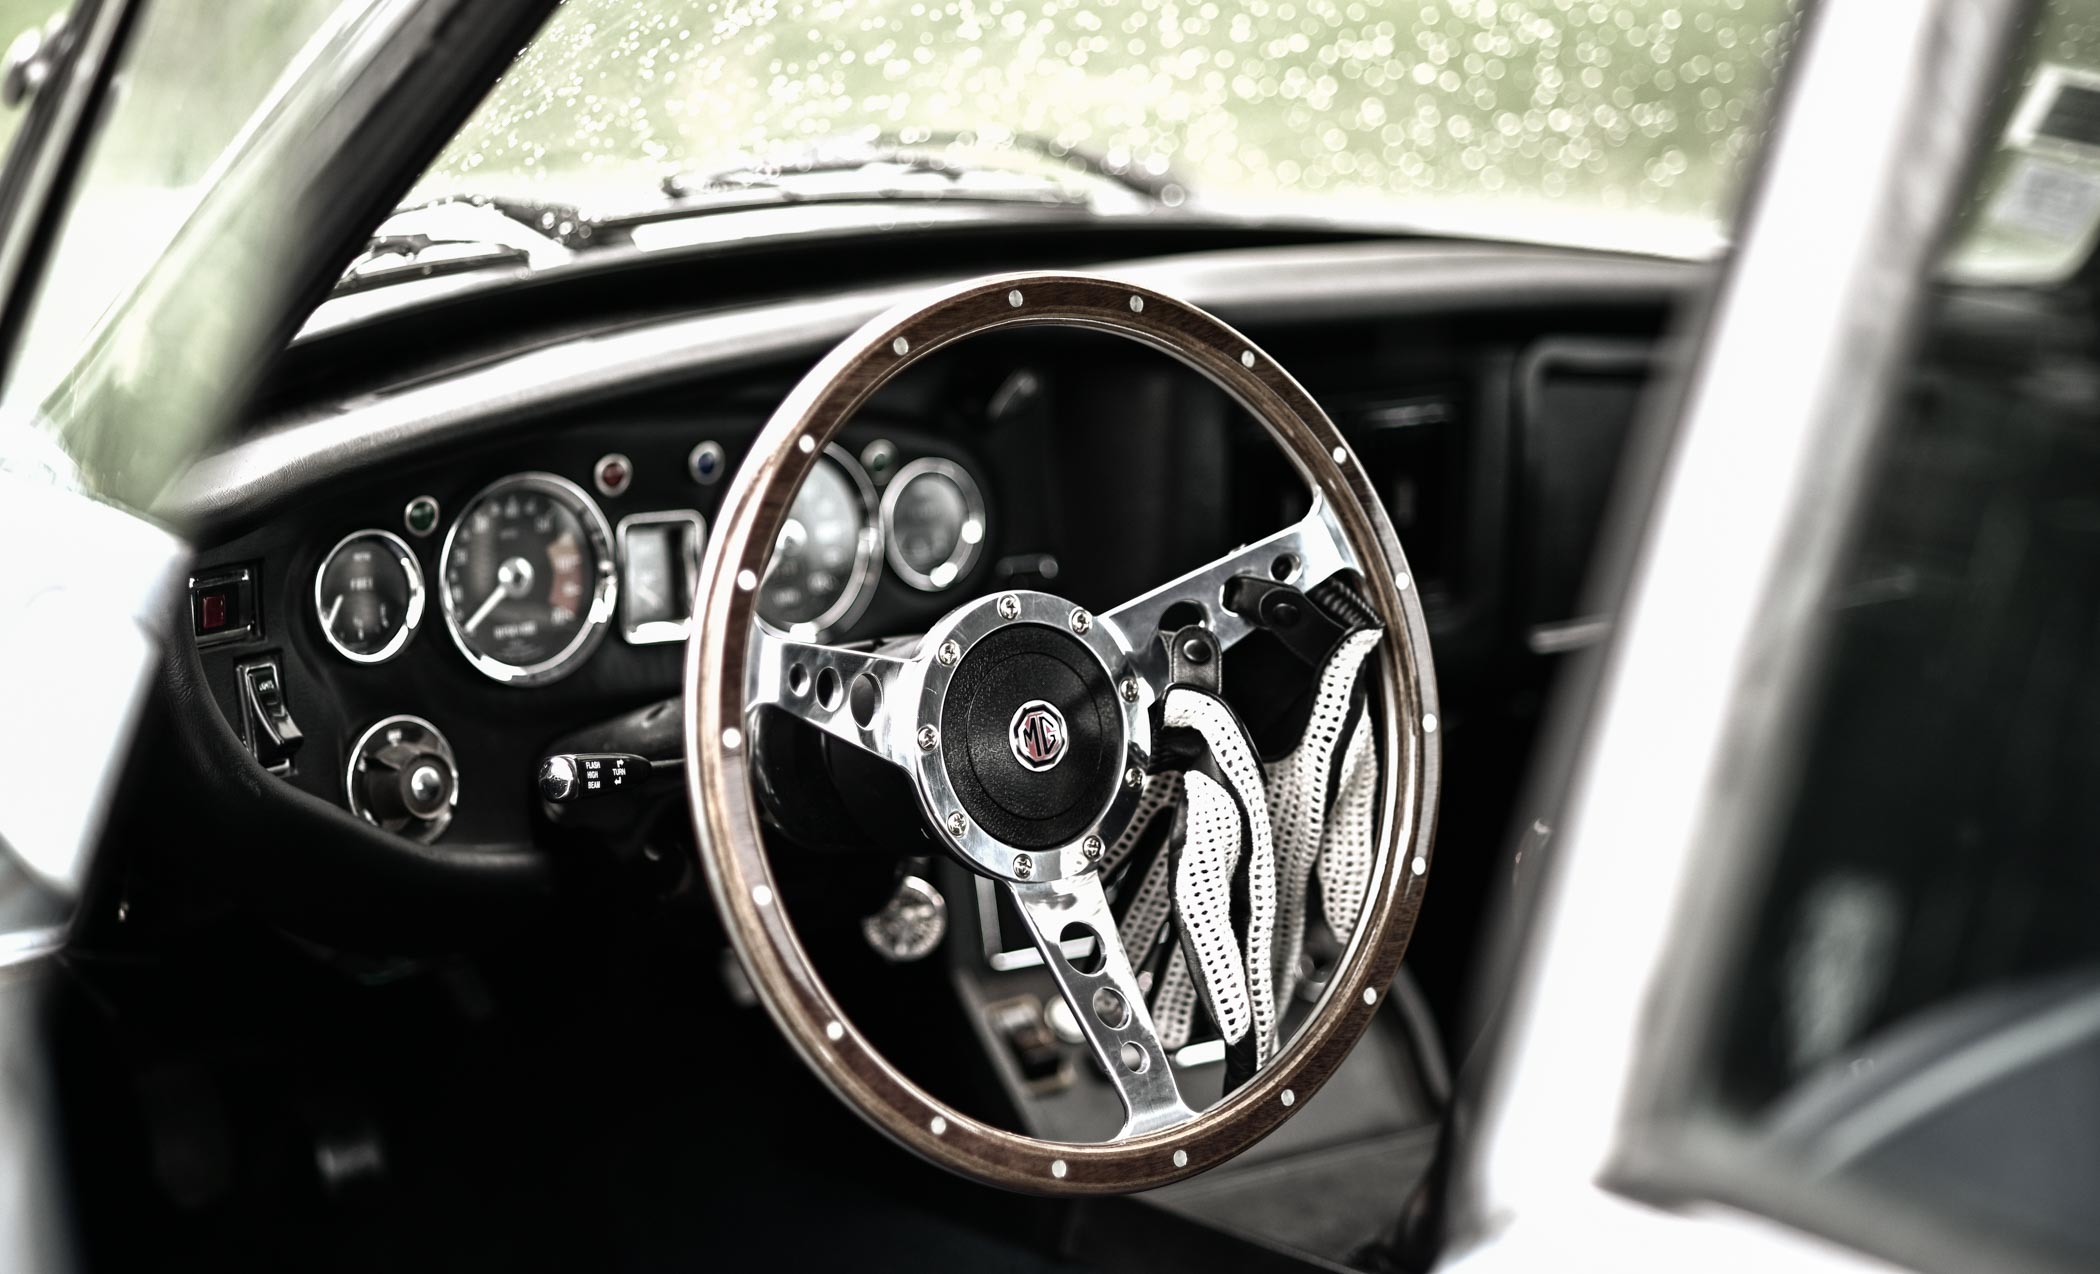 A Personal Story Getting Into Classics Acquiring An Mgb And Learning To Live With It Monochrome Watches